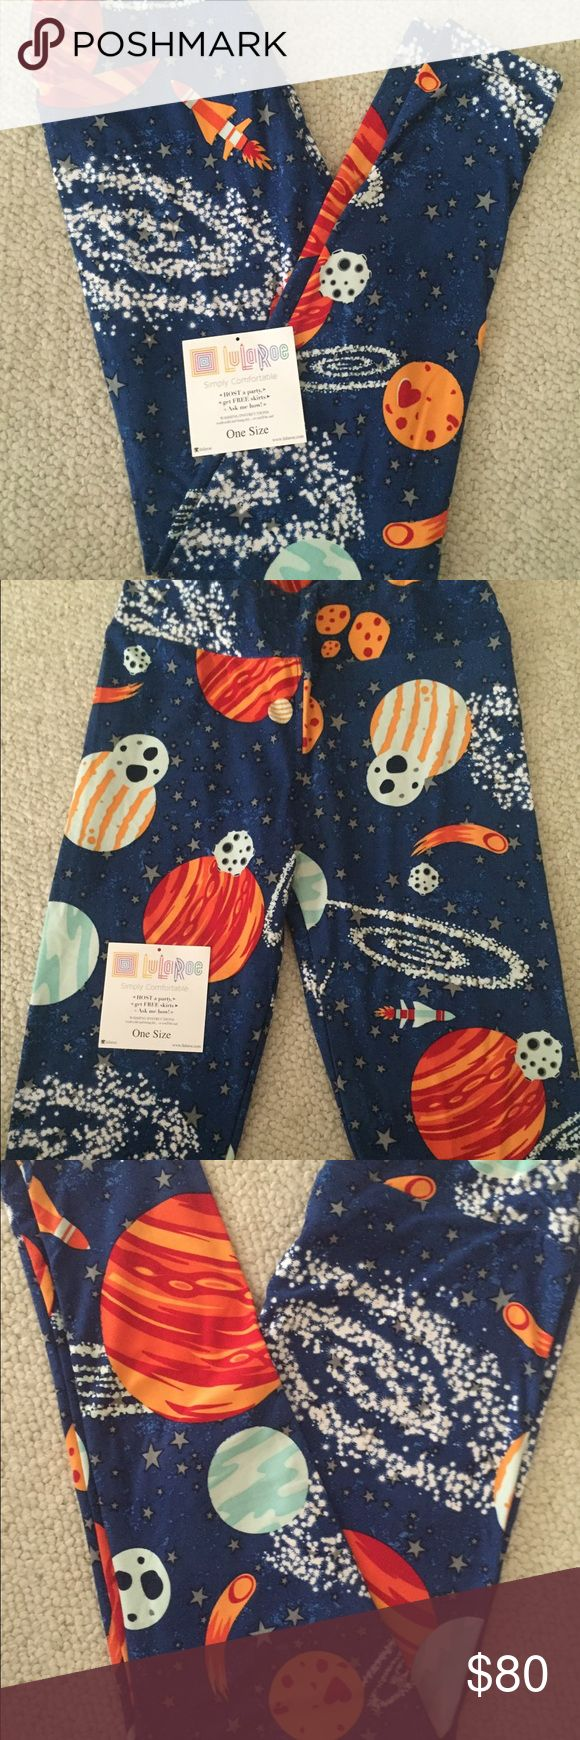 LuLaRoe OS Space Leggings! *MAJOR UNICORN* LuLaRoe OS (one size) Outer Space leggings! Major Unicorn 🦄 LuLaRoe Pants Leggings